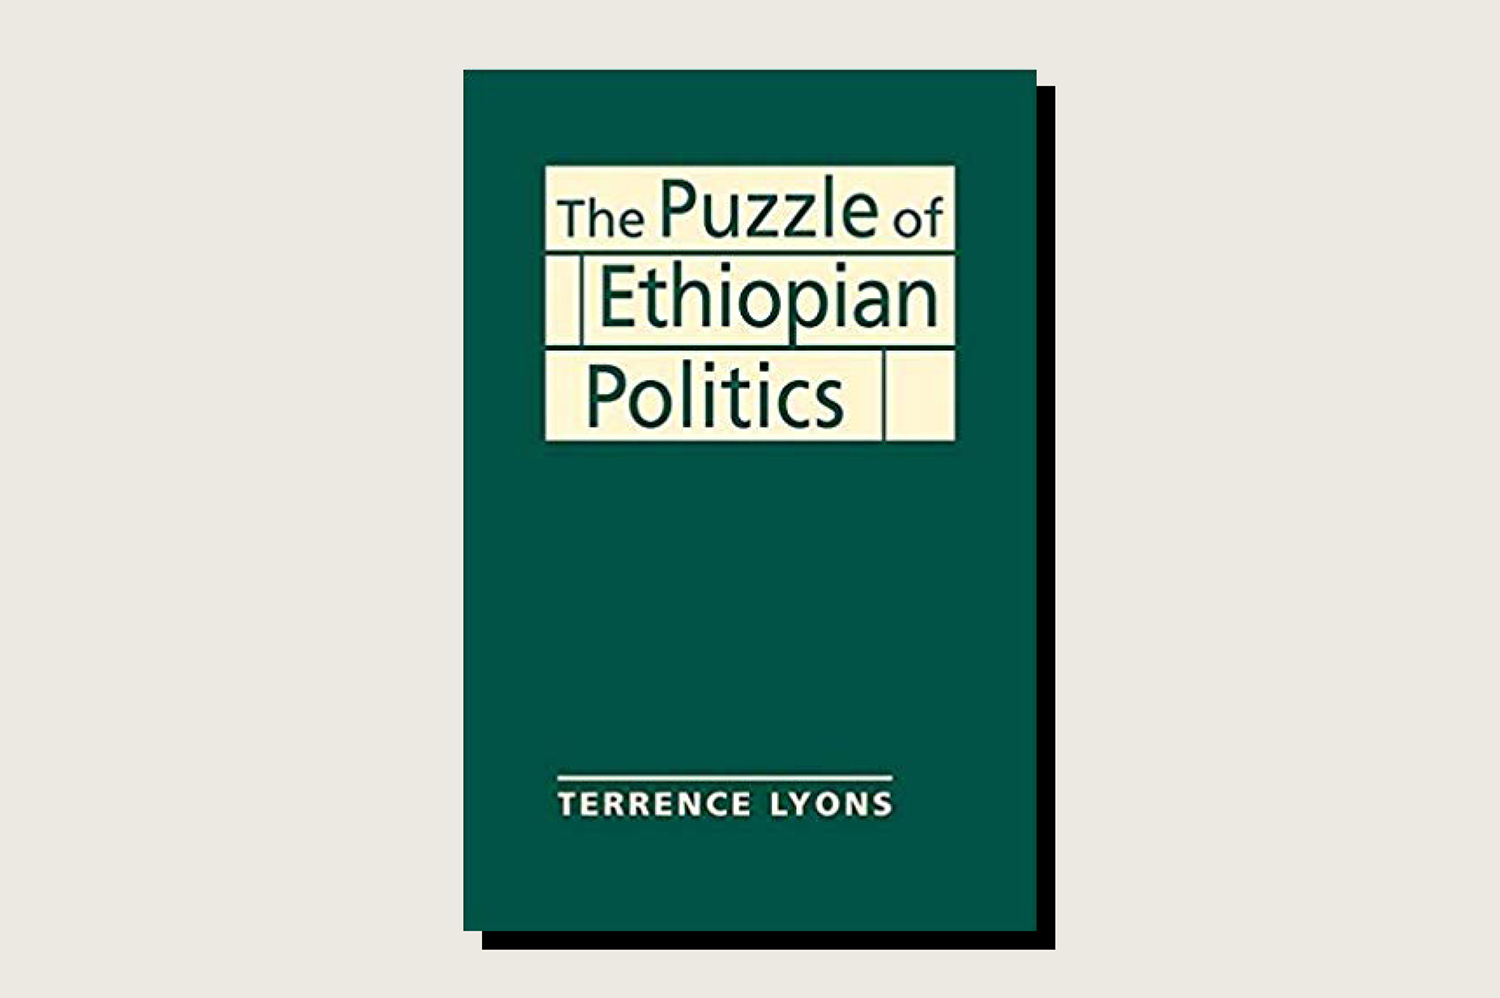 The Puzzle of Ethiopian Politics, Terrence Lyons, Lynne Rienner, 245 pp., .95, July 2019